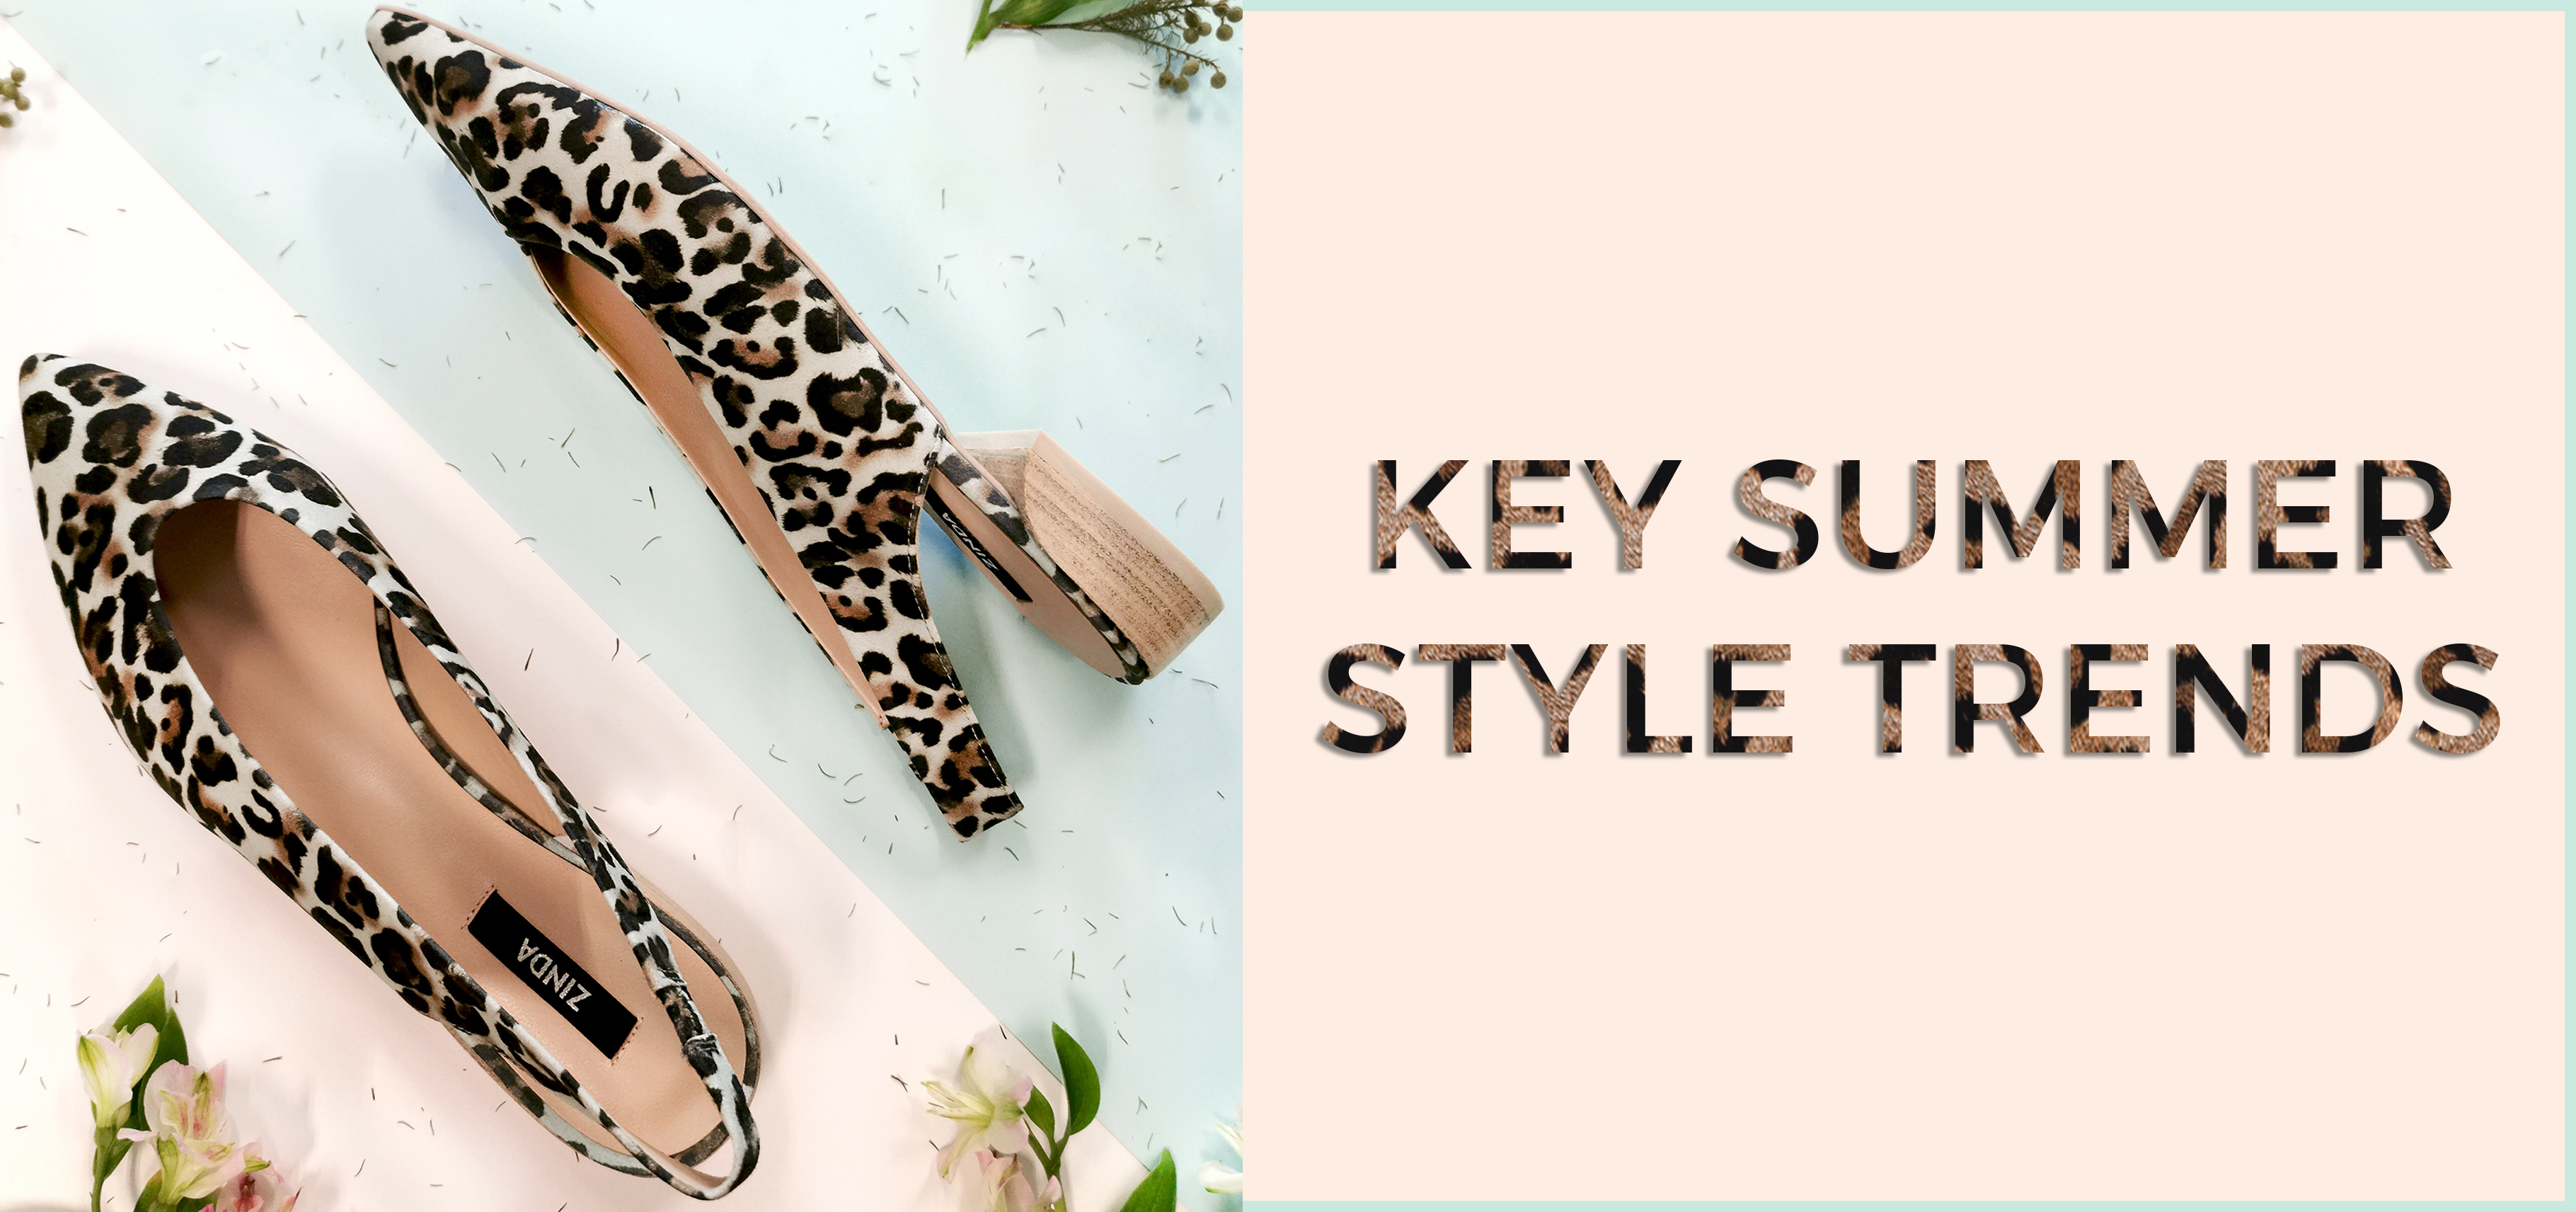 Whatever your style, you'll feel fabulous in quality European shoes from Mikko!  See our curation of the top new season style trends here: